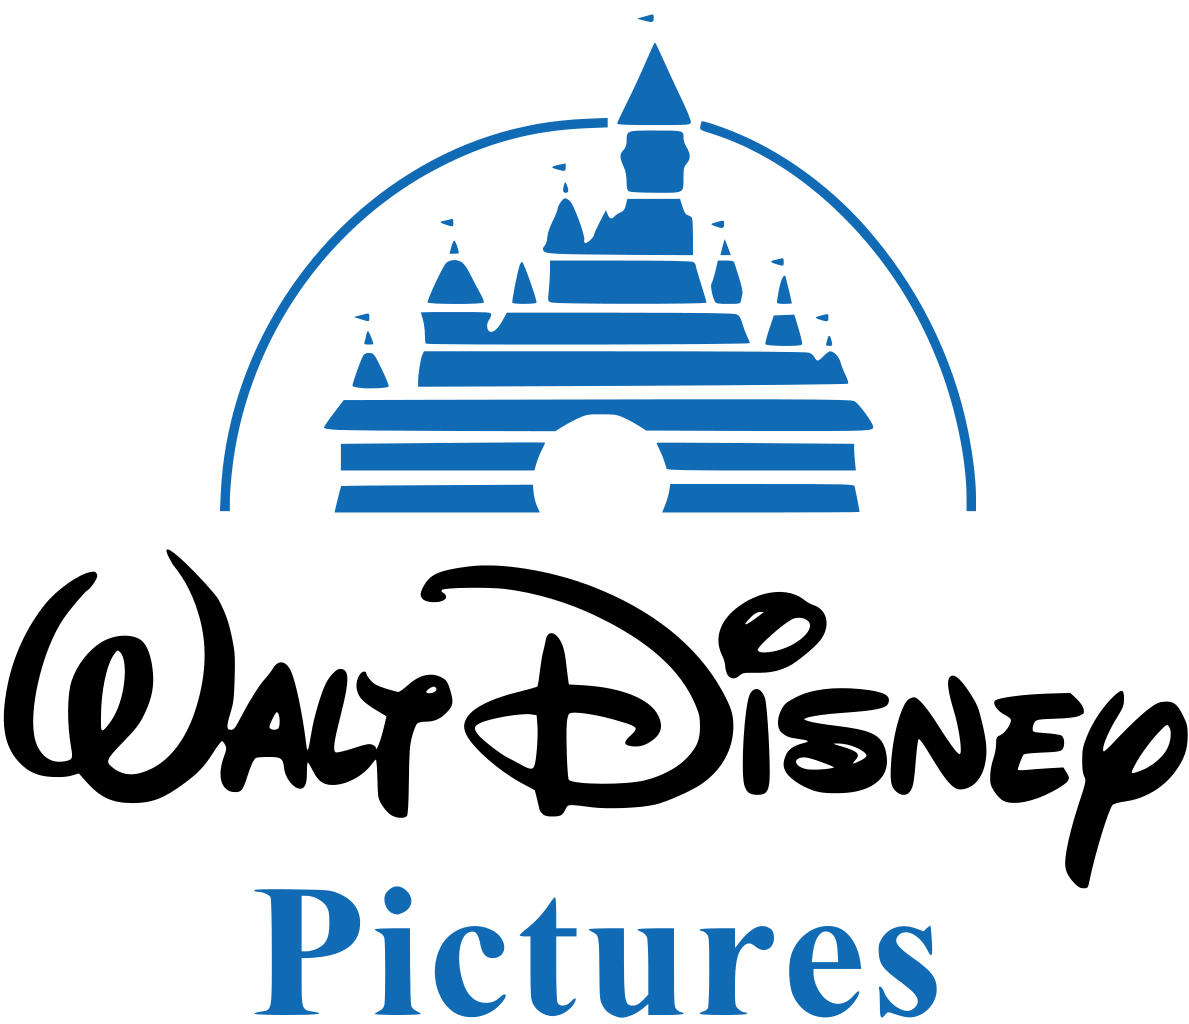 Walt Disney Png - Image   Walt Disney Pictures Castle Logo.png   Logopedia   Fandom Powered By Wikia, Transparent background PNG HD thumbnail